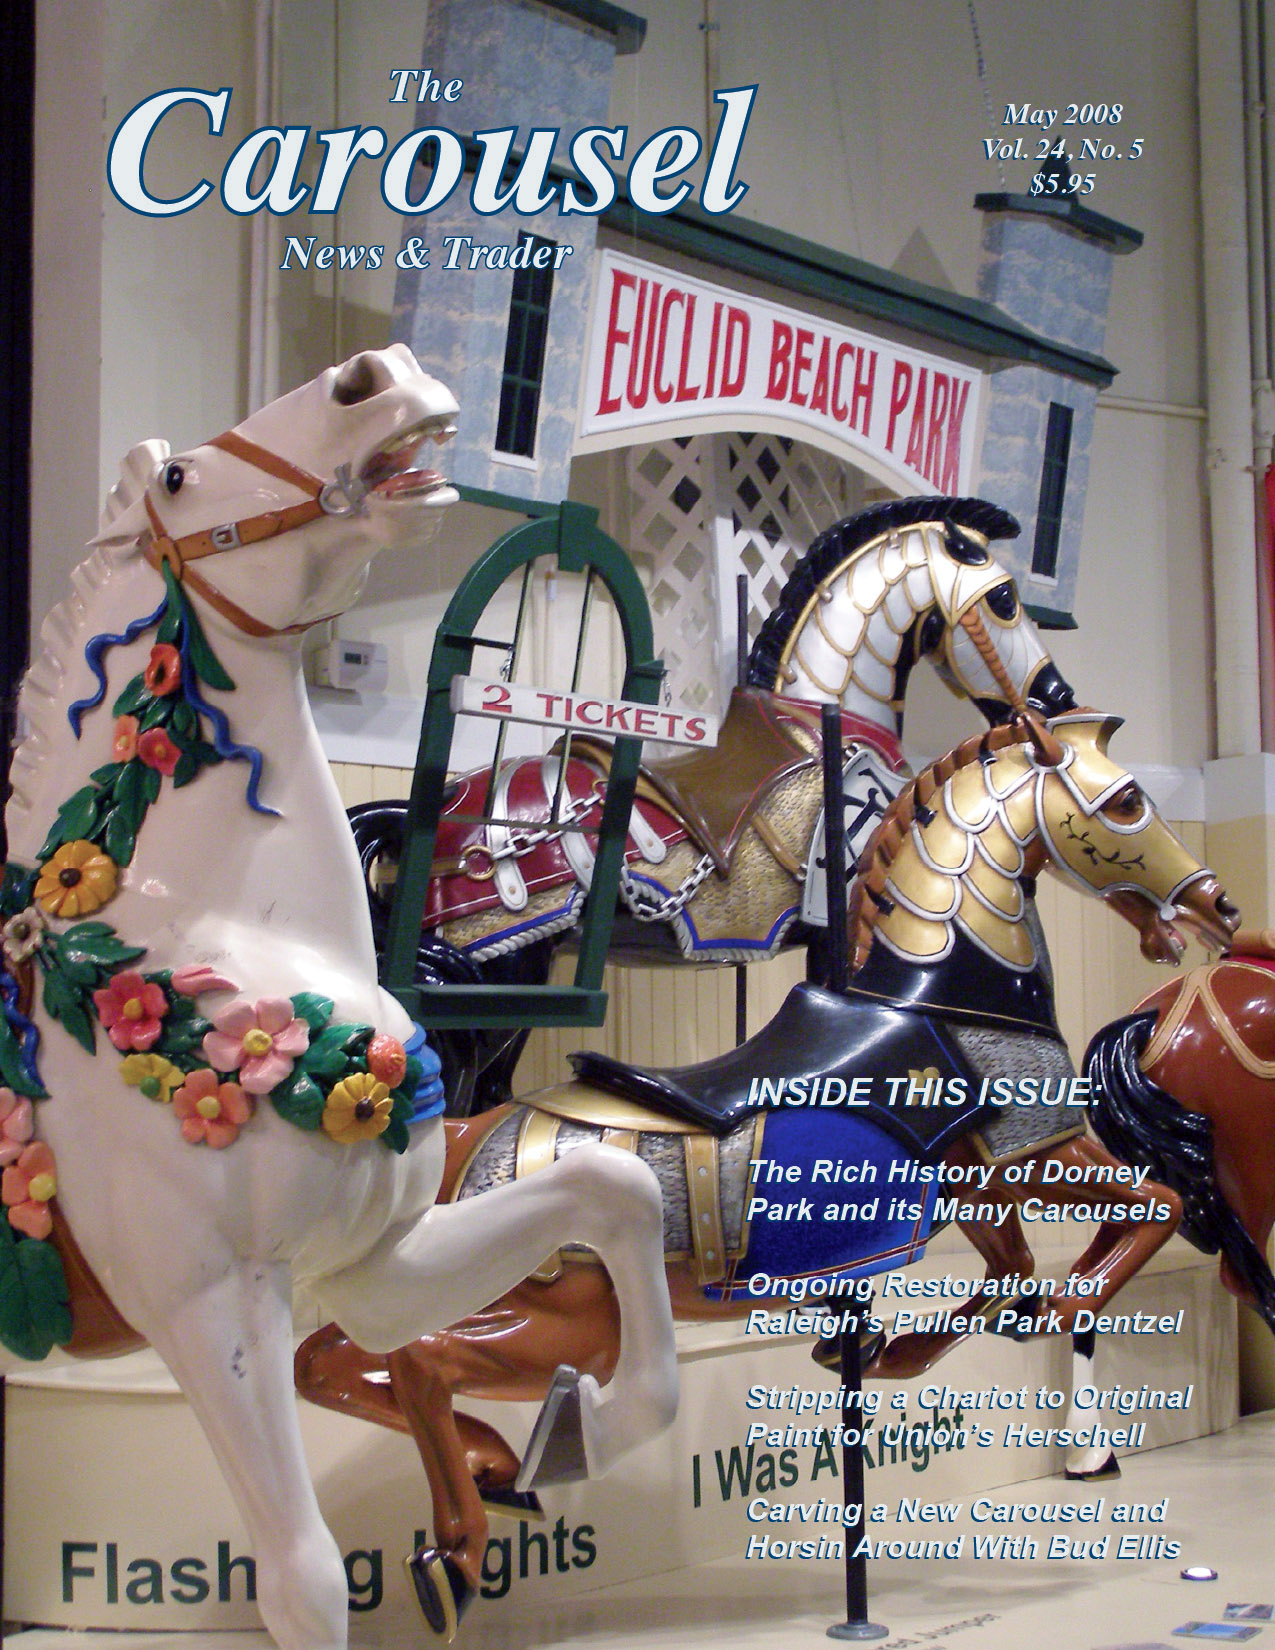 Carousel-news-cover-5-PTC-19-MGR-Museum-May-2008